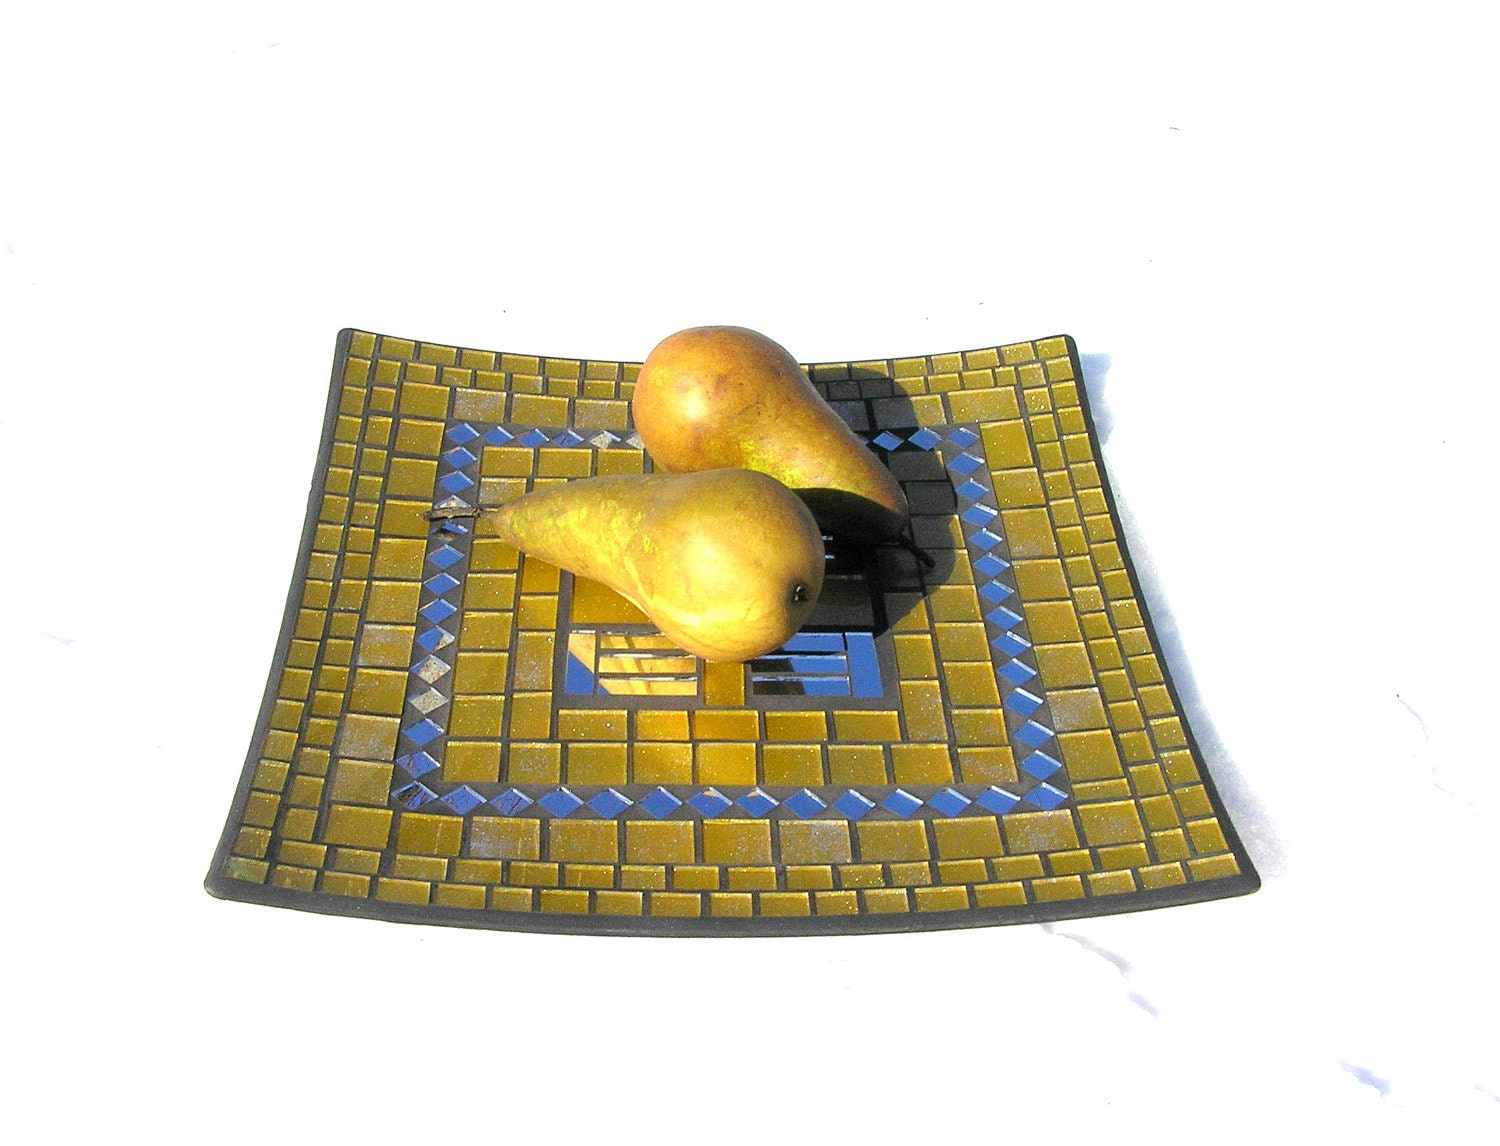 Golden yellow fruit platter designer mosaic chic modern home decor - SirliMosaic